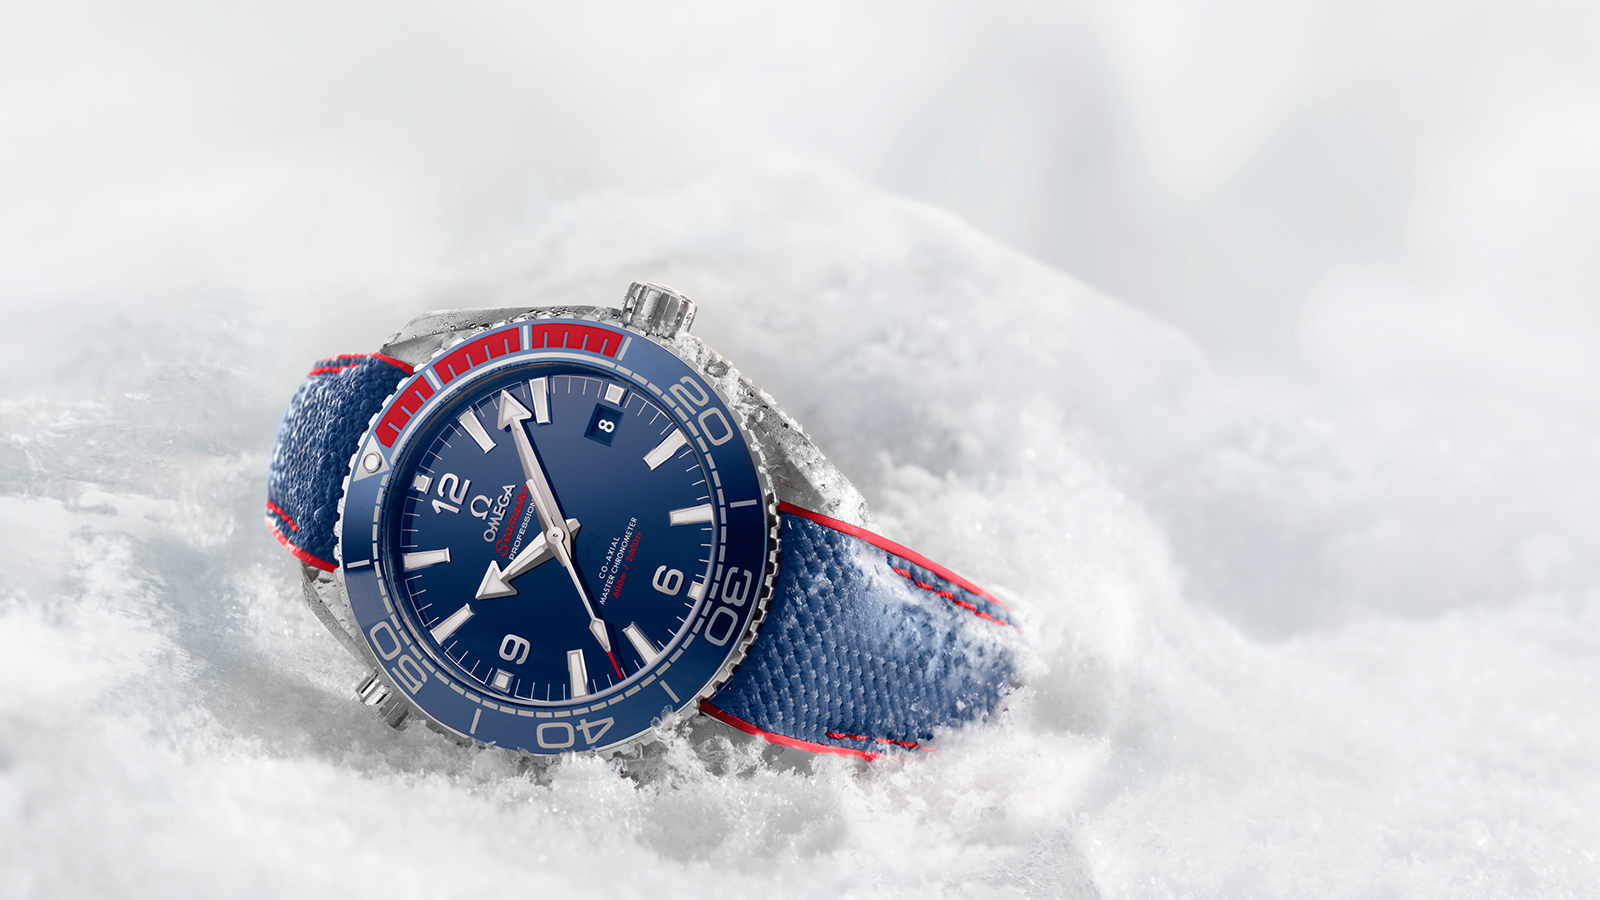 Watch Omega OLYMPIC GAMES COLLECTION Pyeongchang 2018 Limited Edition Red and blue Steel on rubber strap sunk in the snow